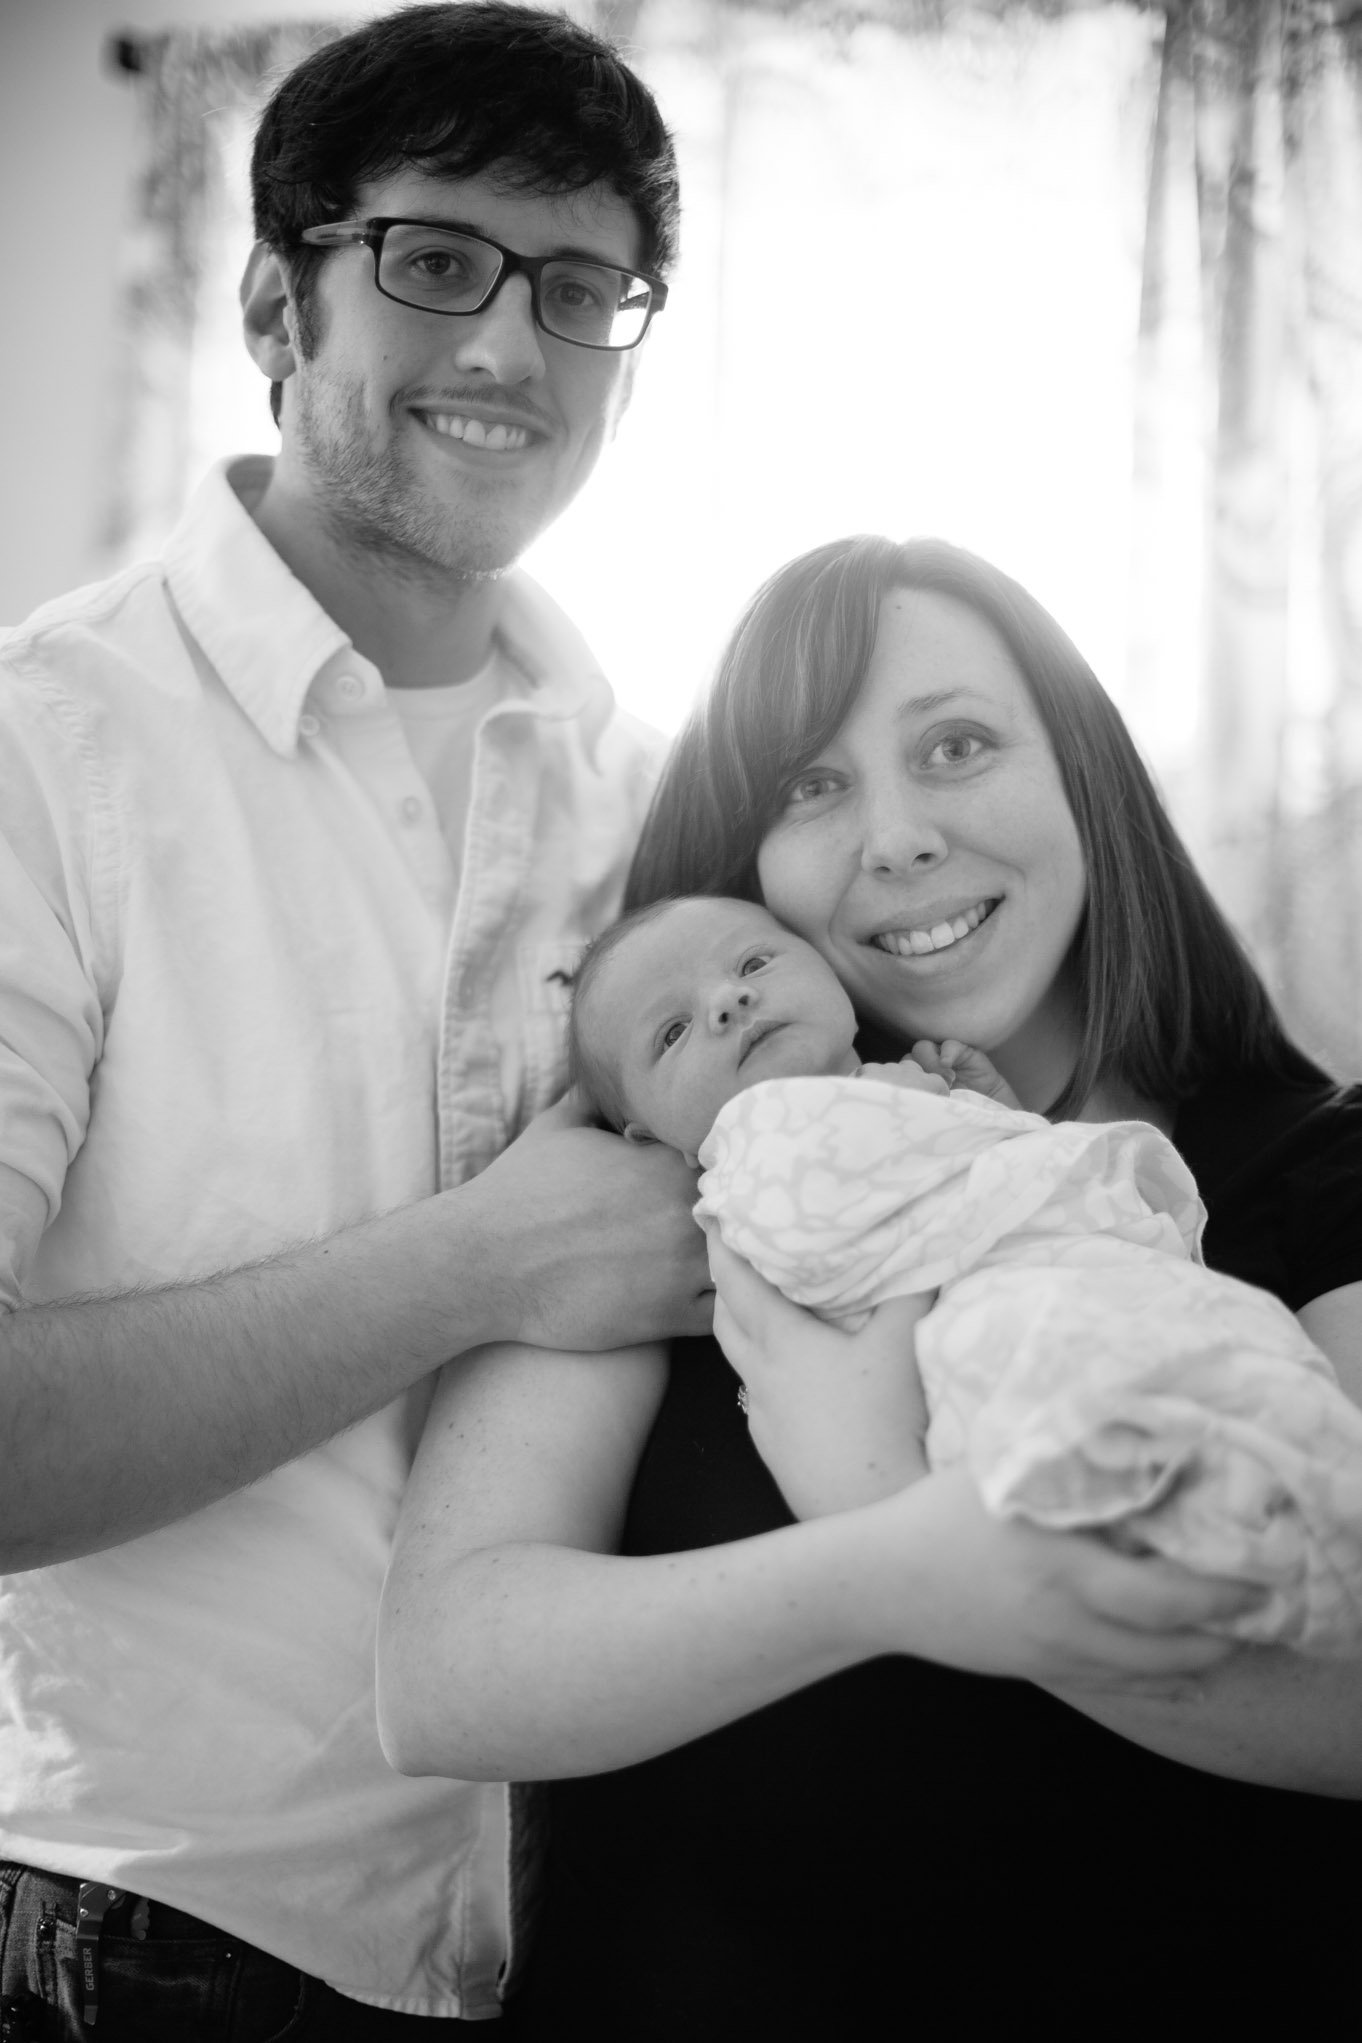 bowman_newborn_blog_tierney_cyanne_photography_2637.jpg